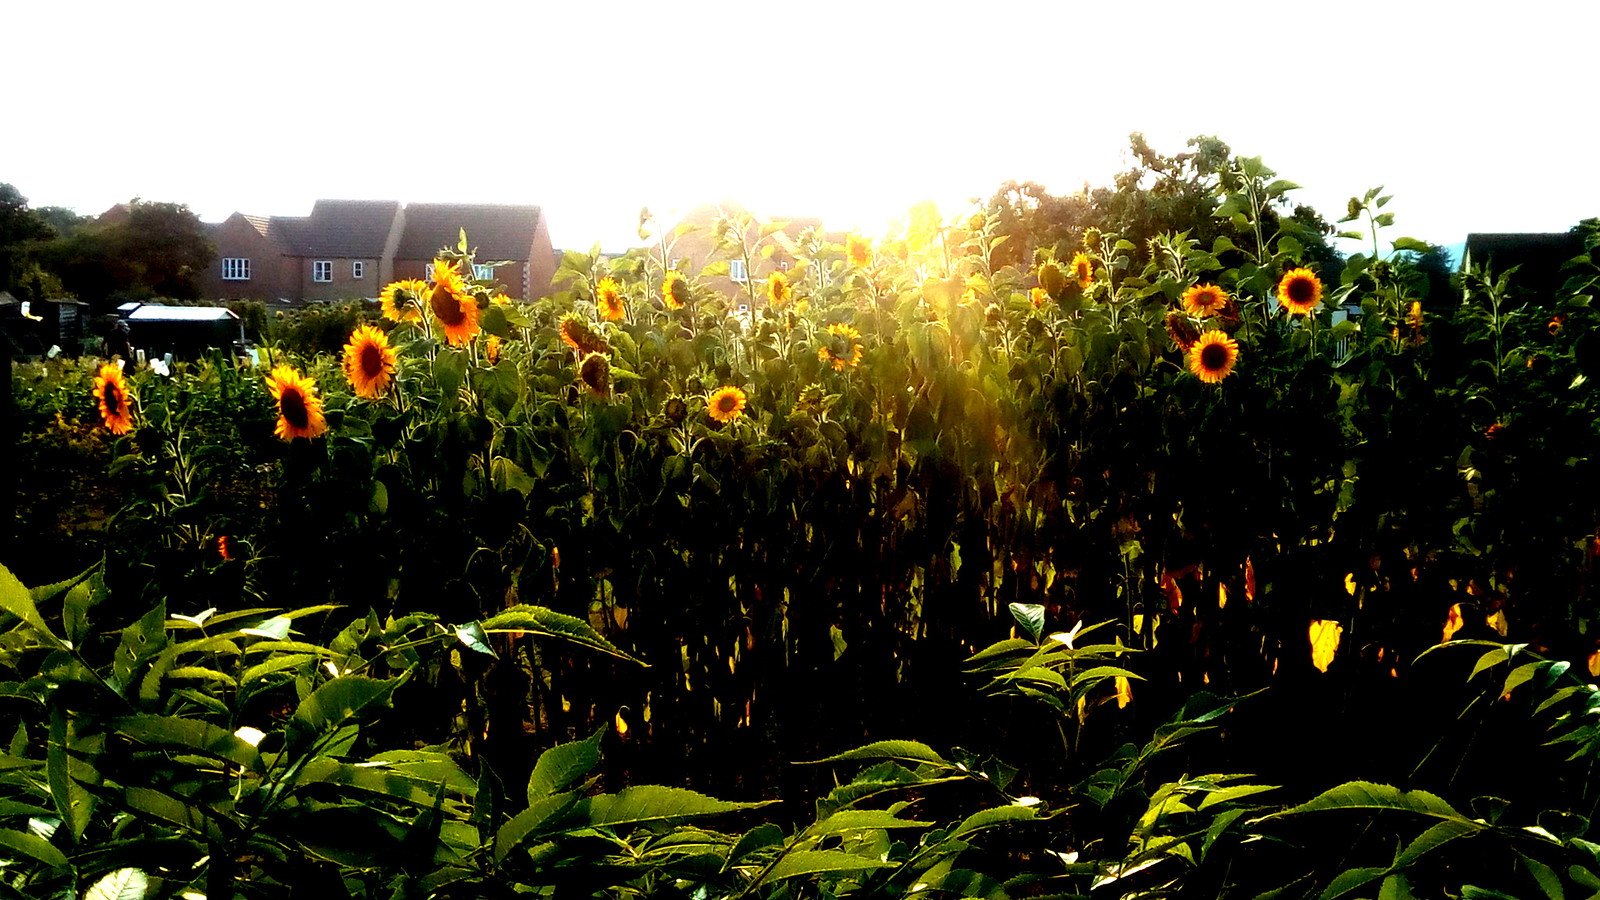 Sun and Sun Flowers The allotments Moreton-in-Marsh